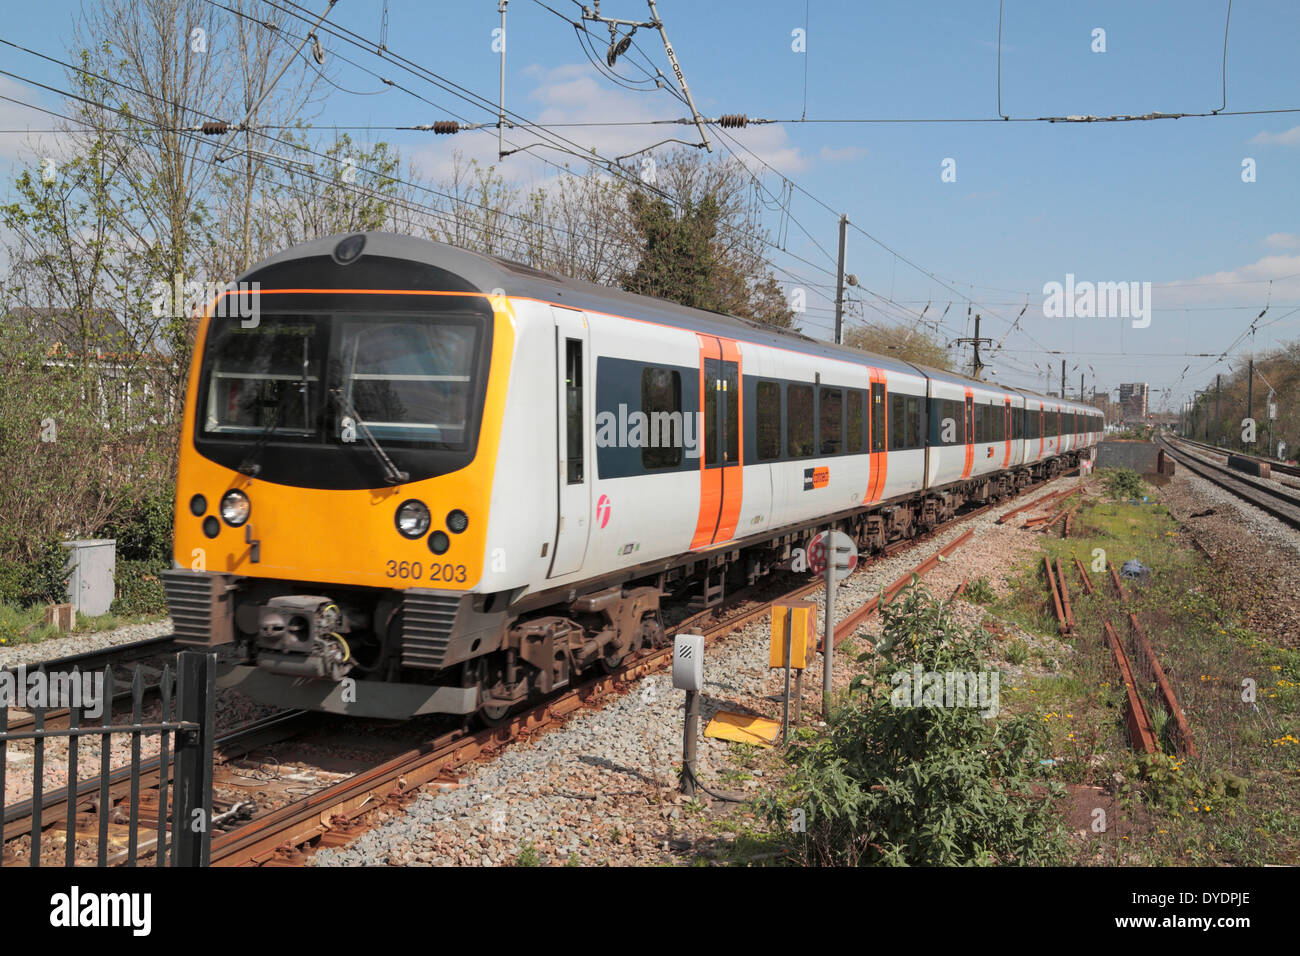 A first great western heathrow connect train passing through a first great western heathrow connect train passing through hanwell elthorne station london uk sciox Choice Image